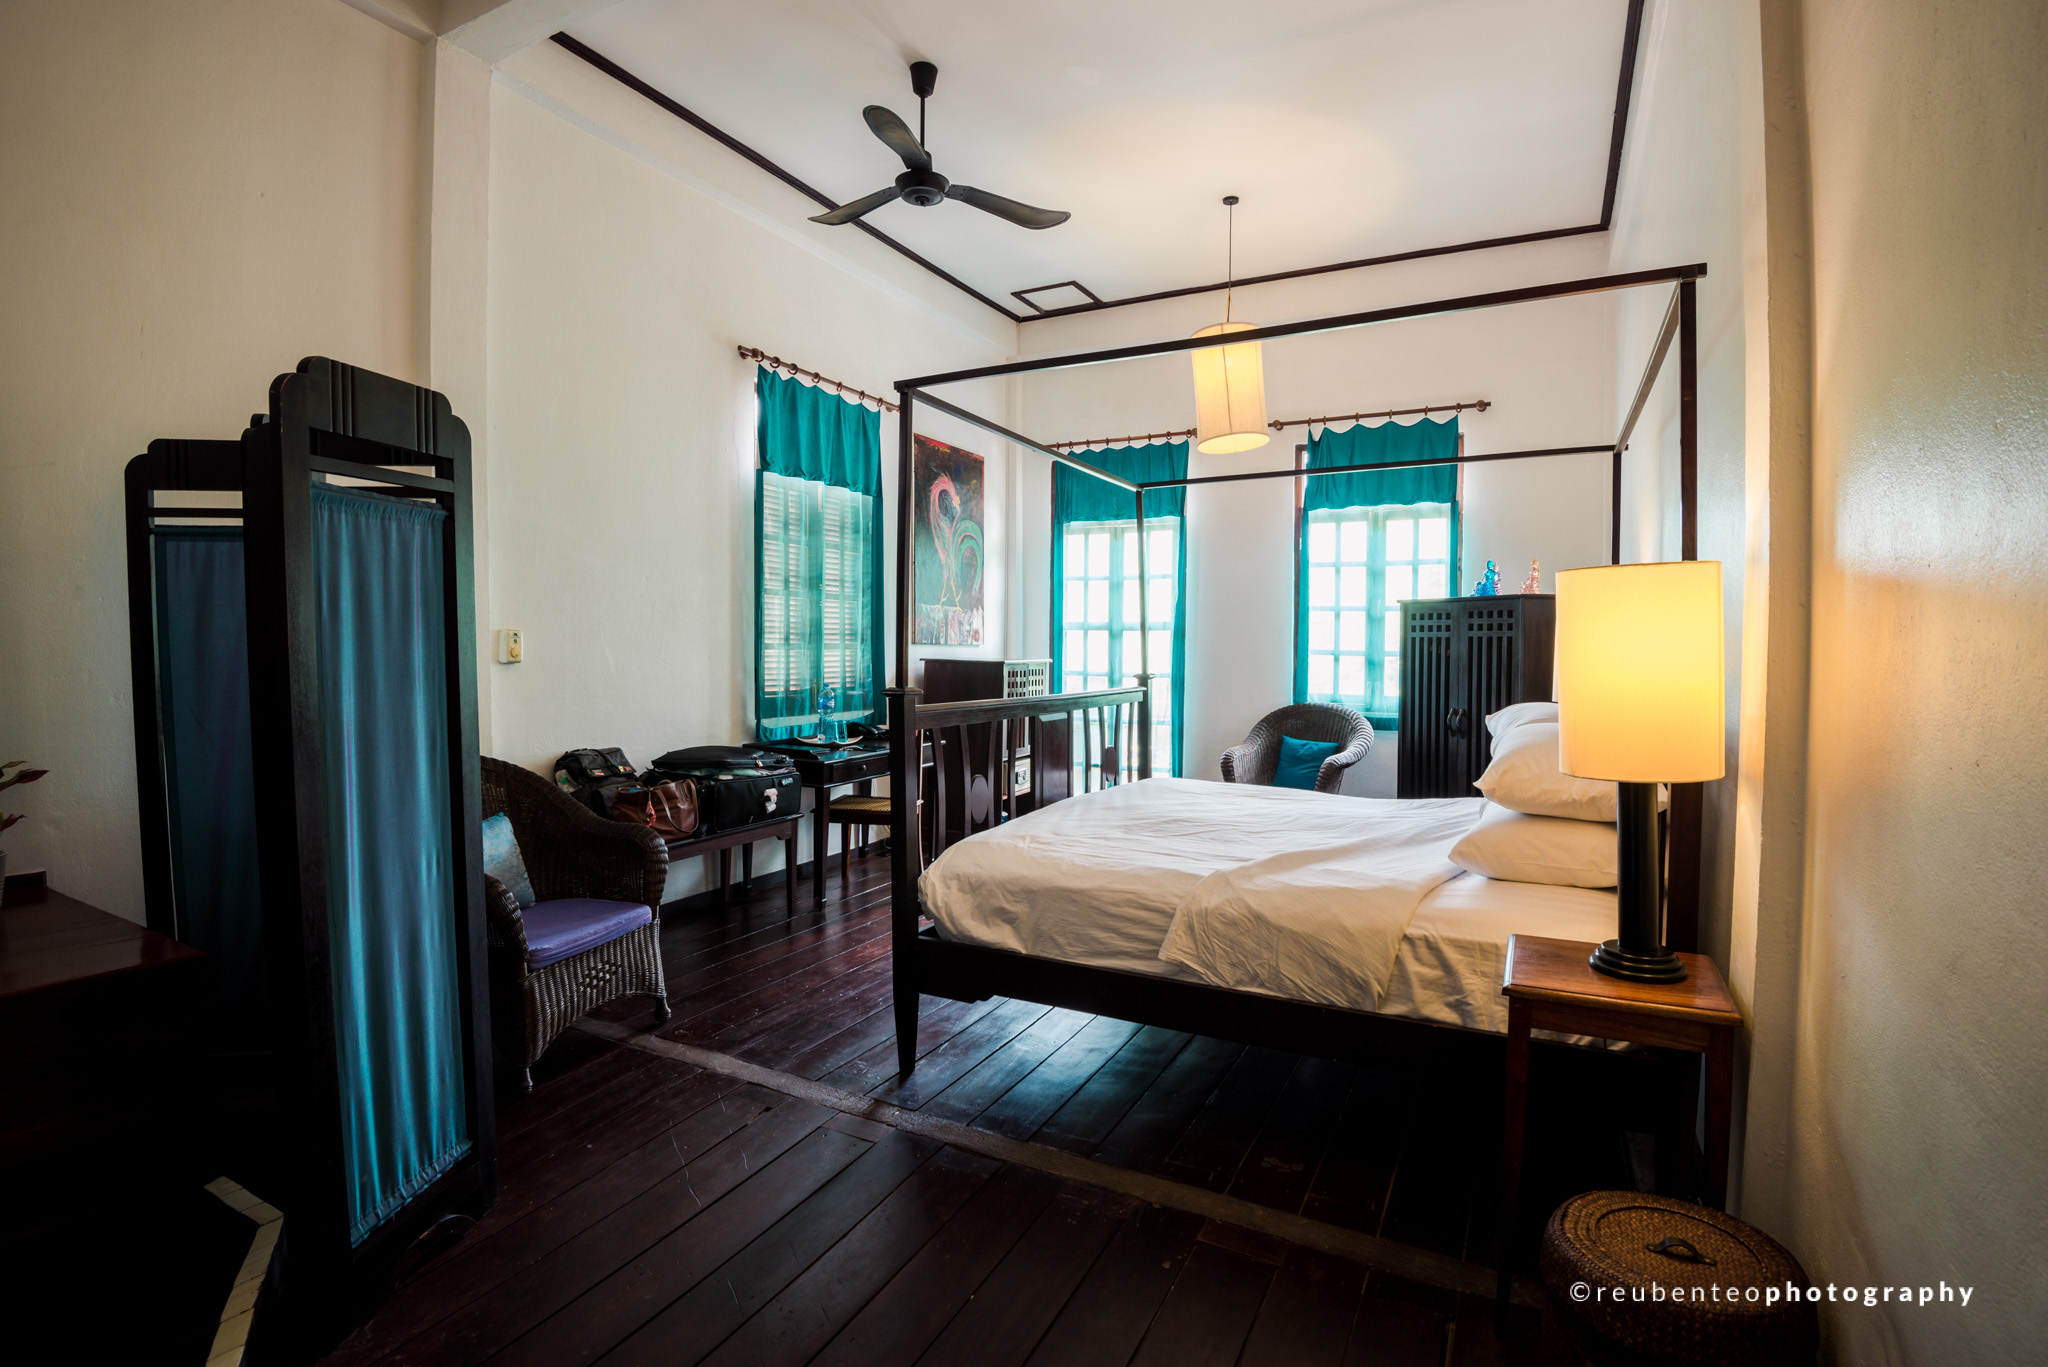 The Apsara Hotel Room